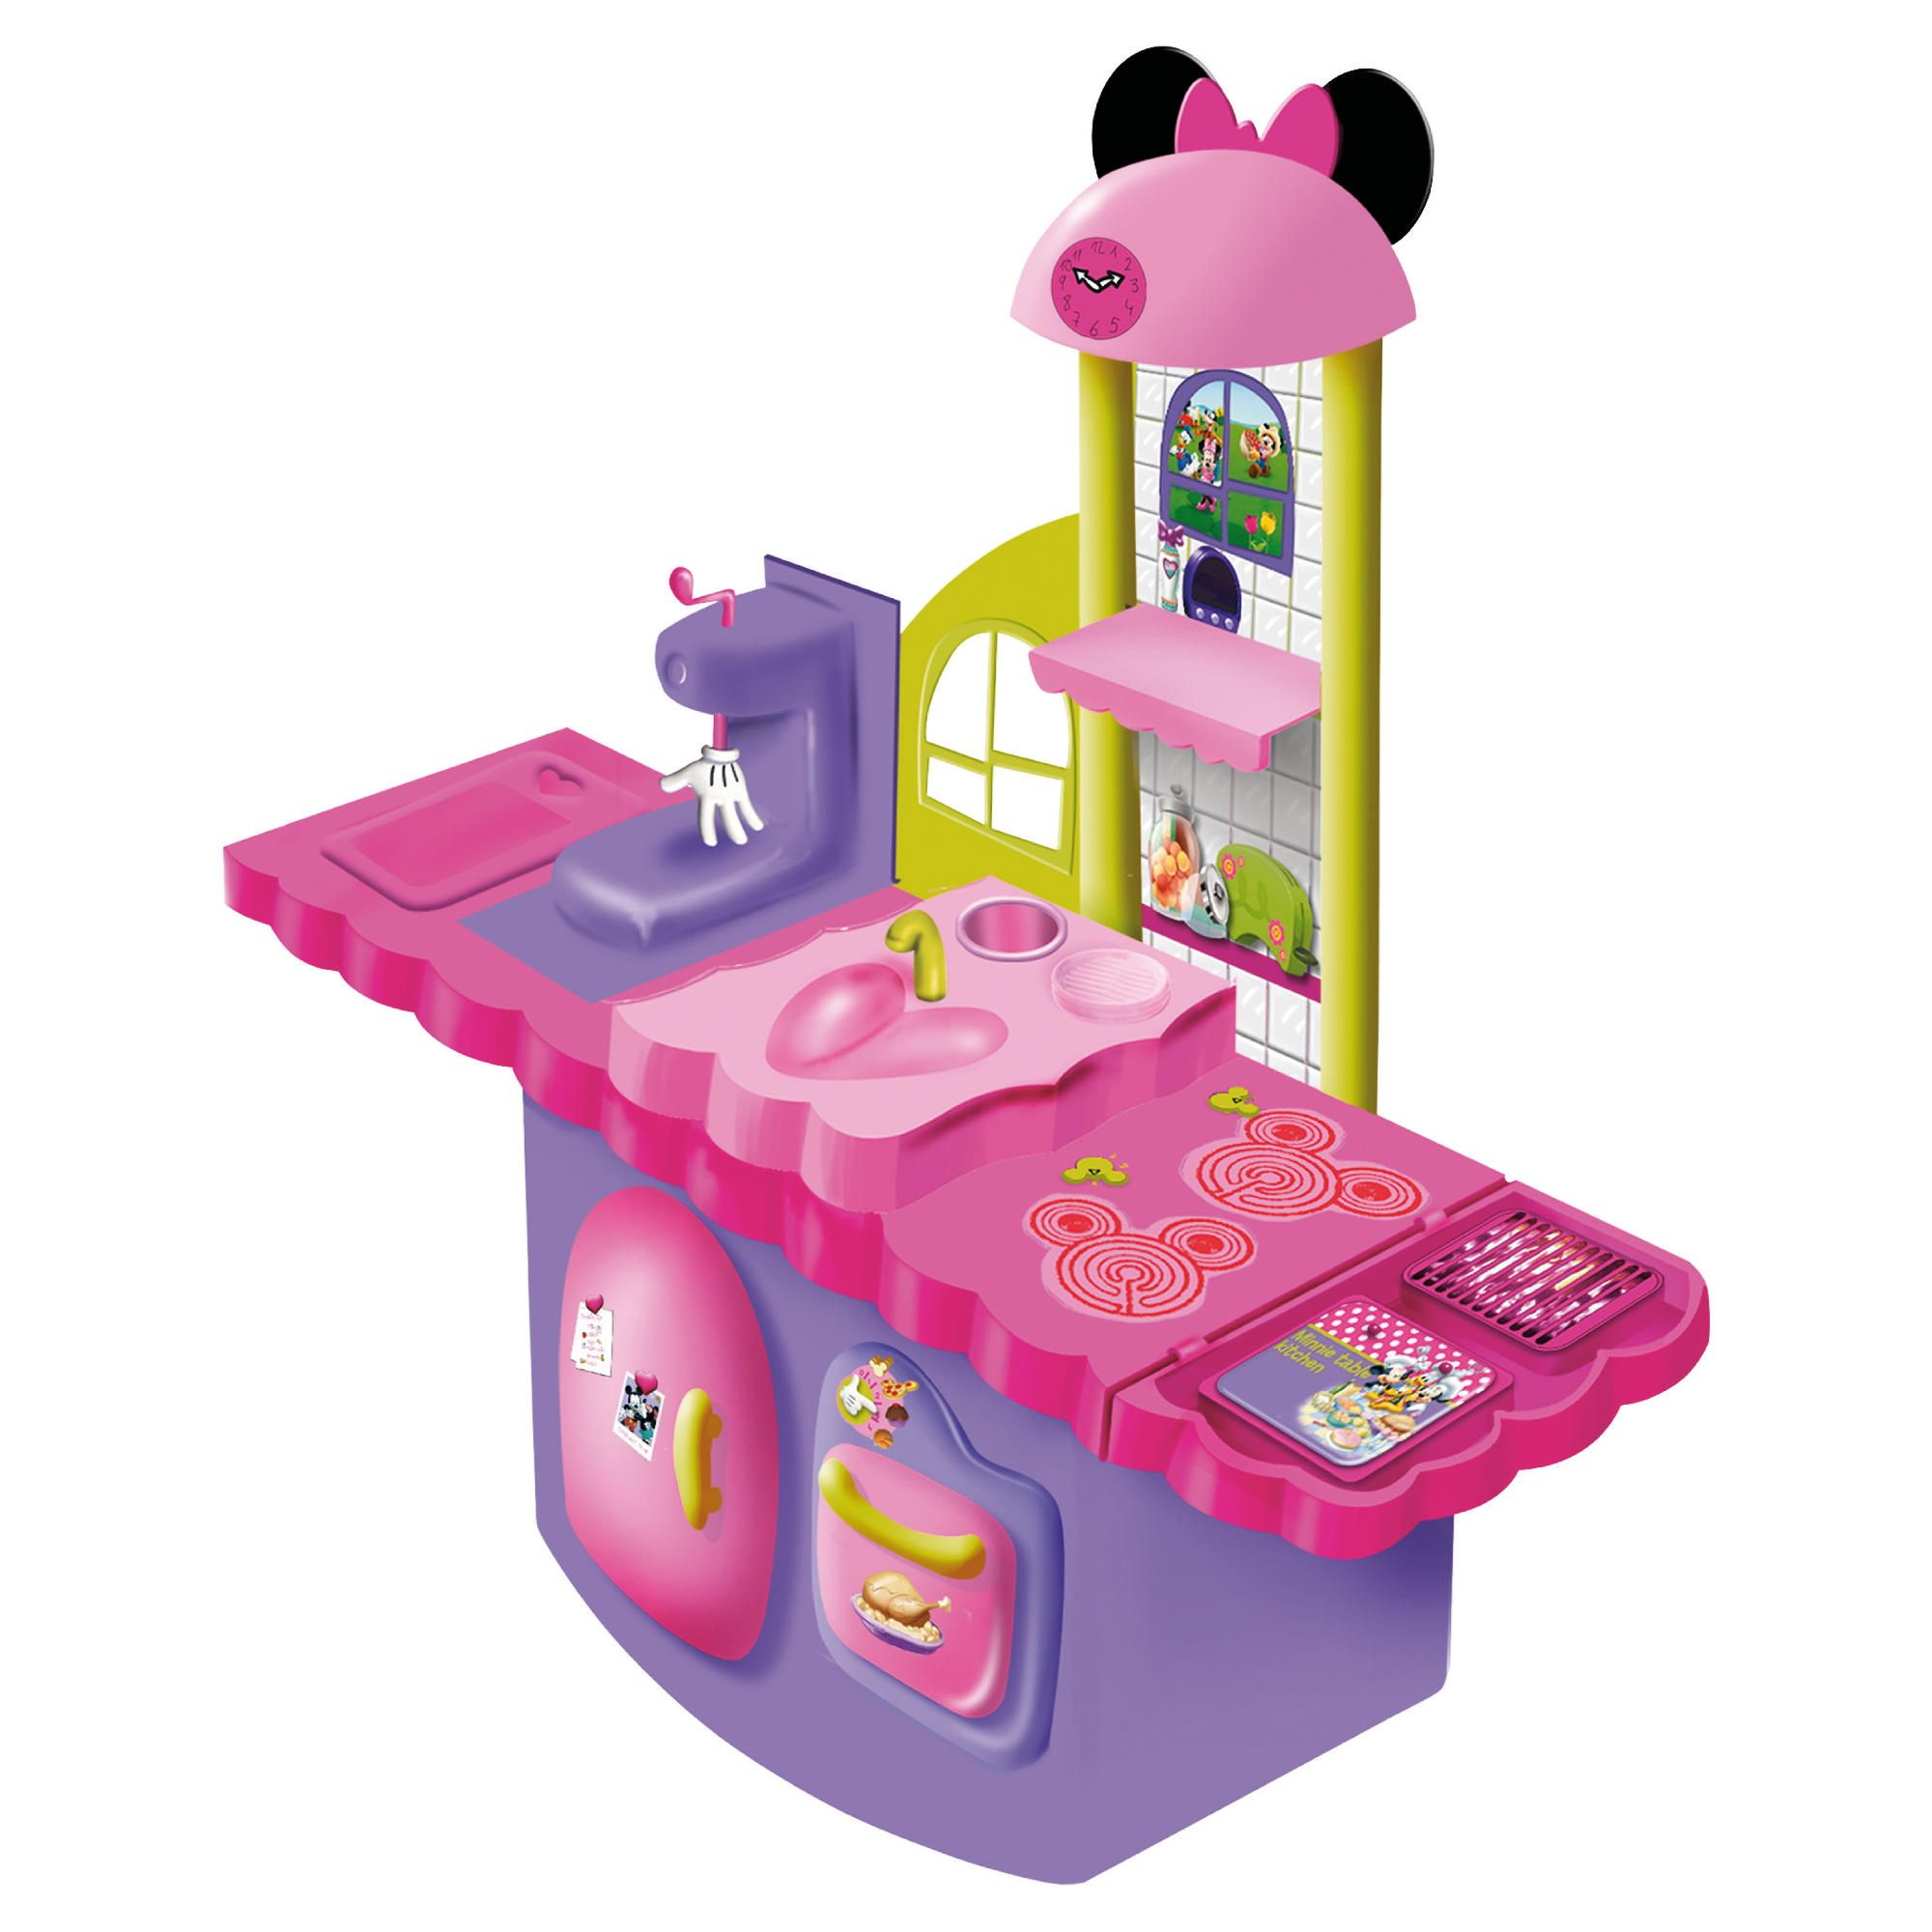 Minnie Mouse Play Kitchen: Myshop